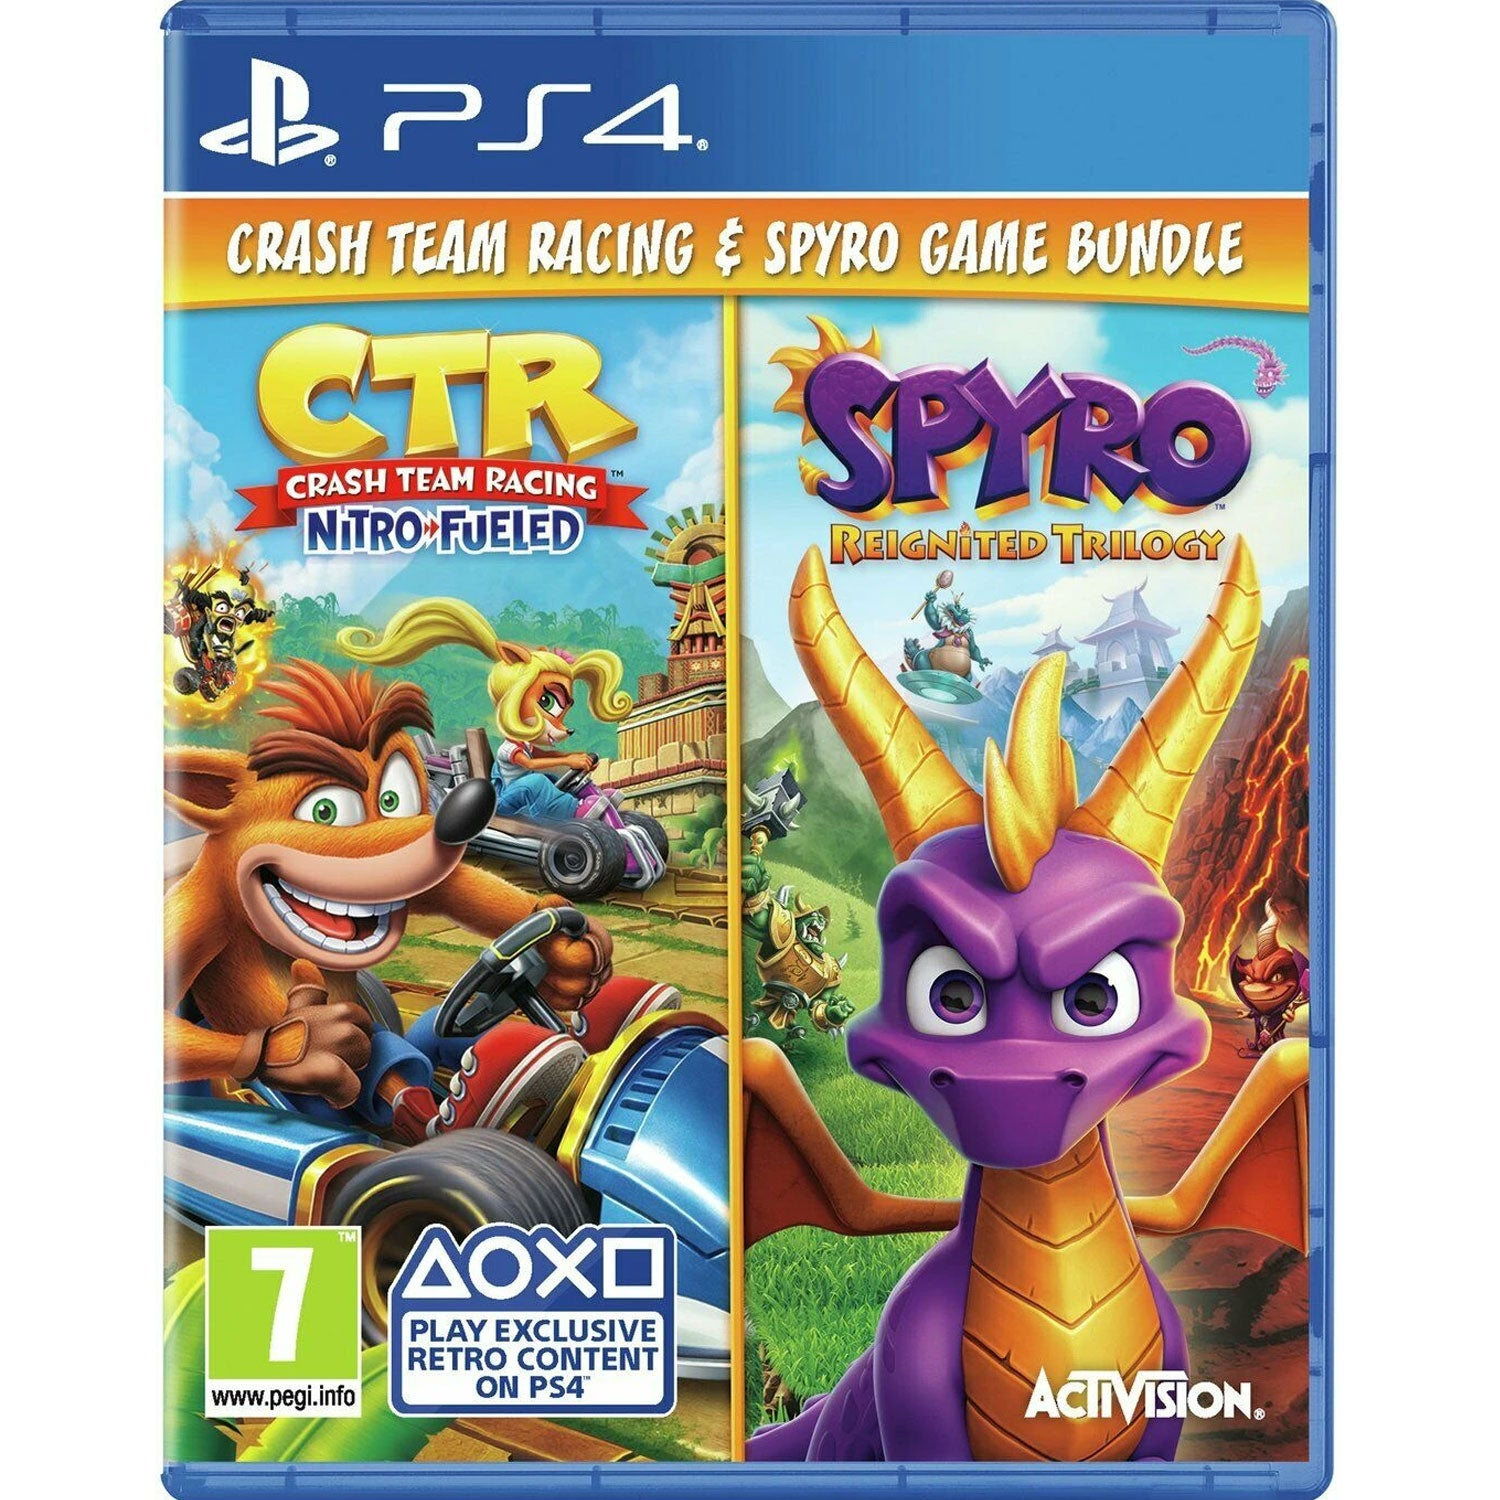 PS4 Crash Team Racing Nitro-Fueled + Spyro Game Bundle